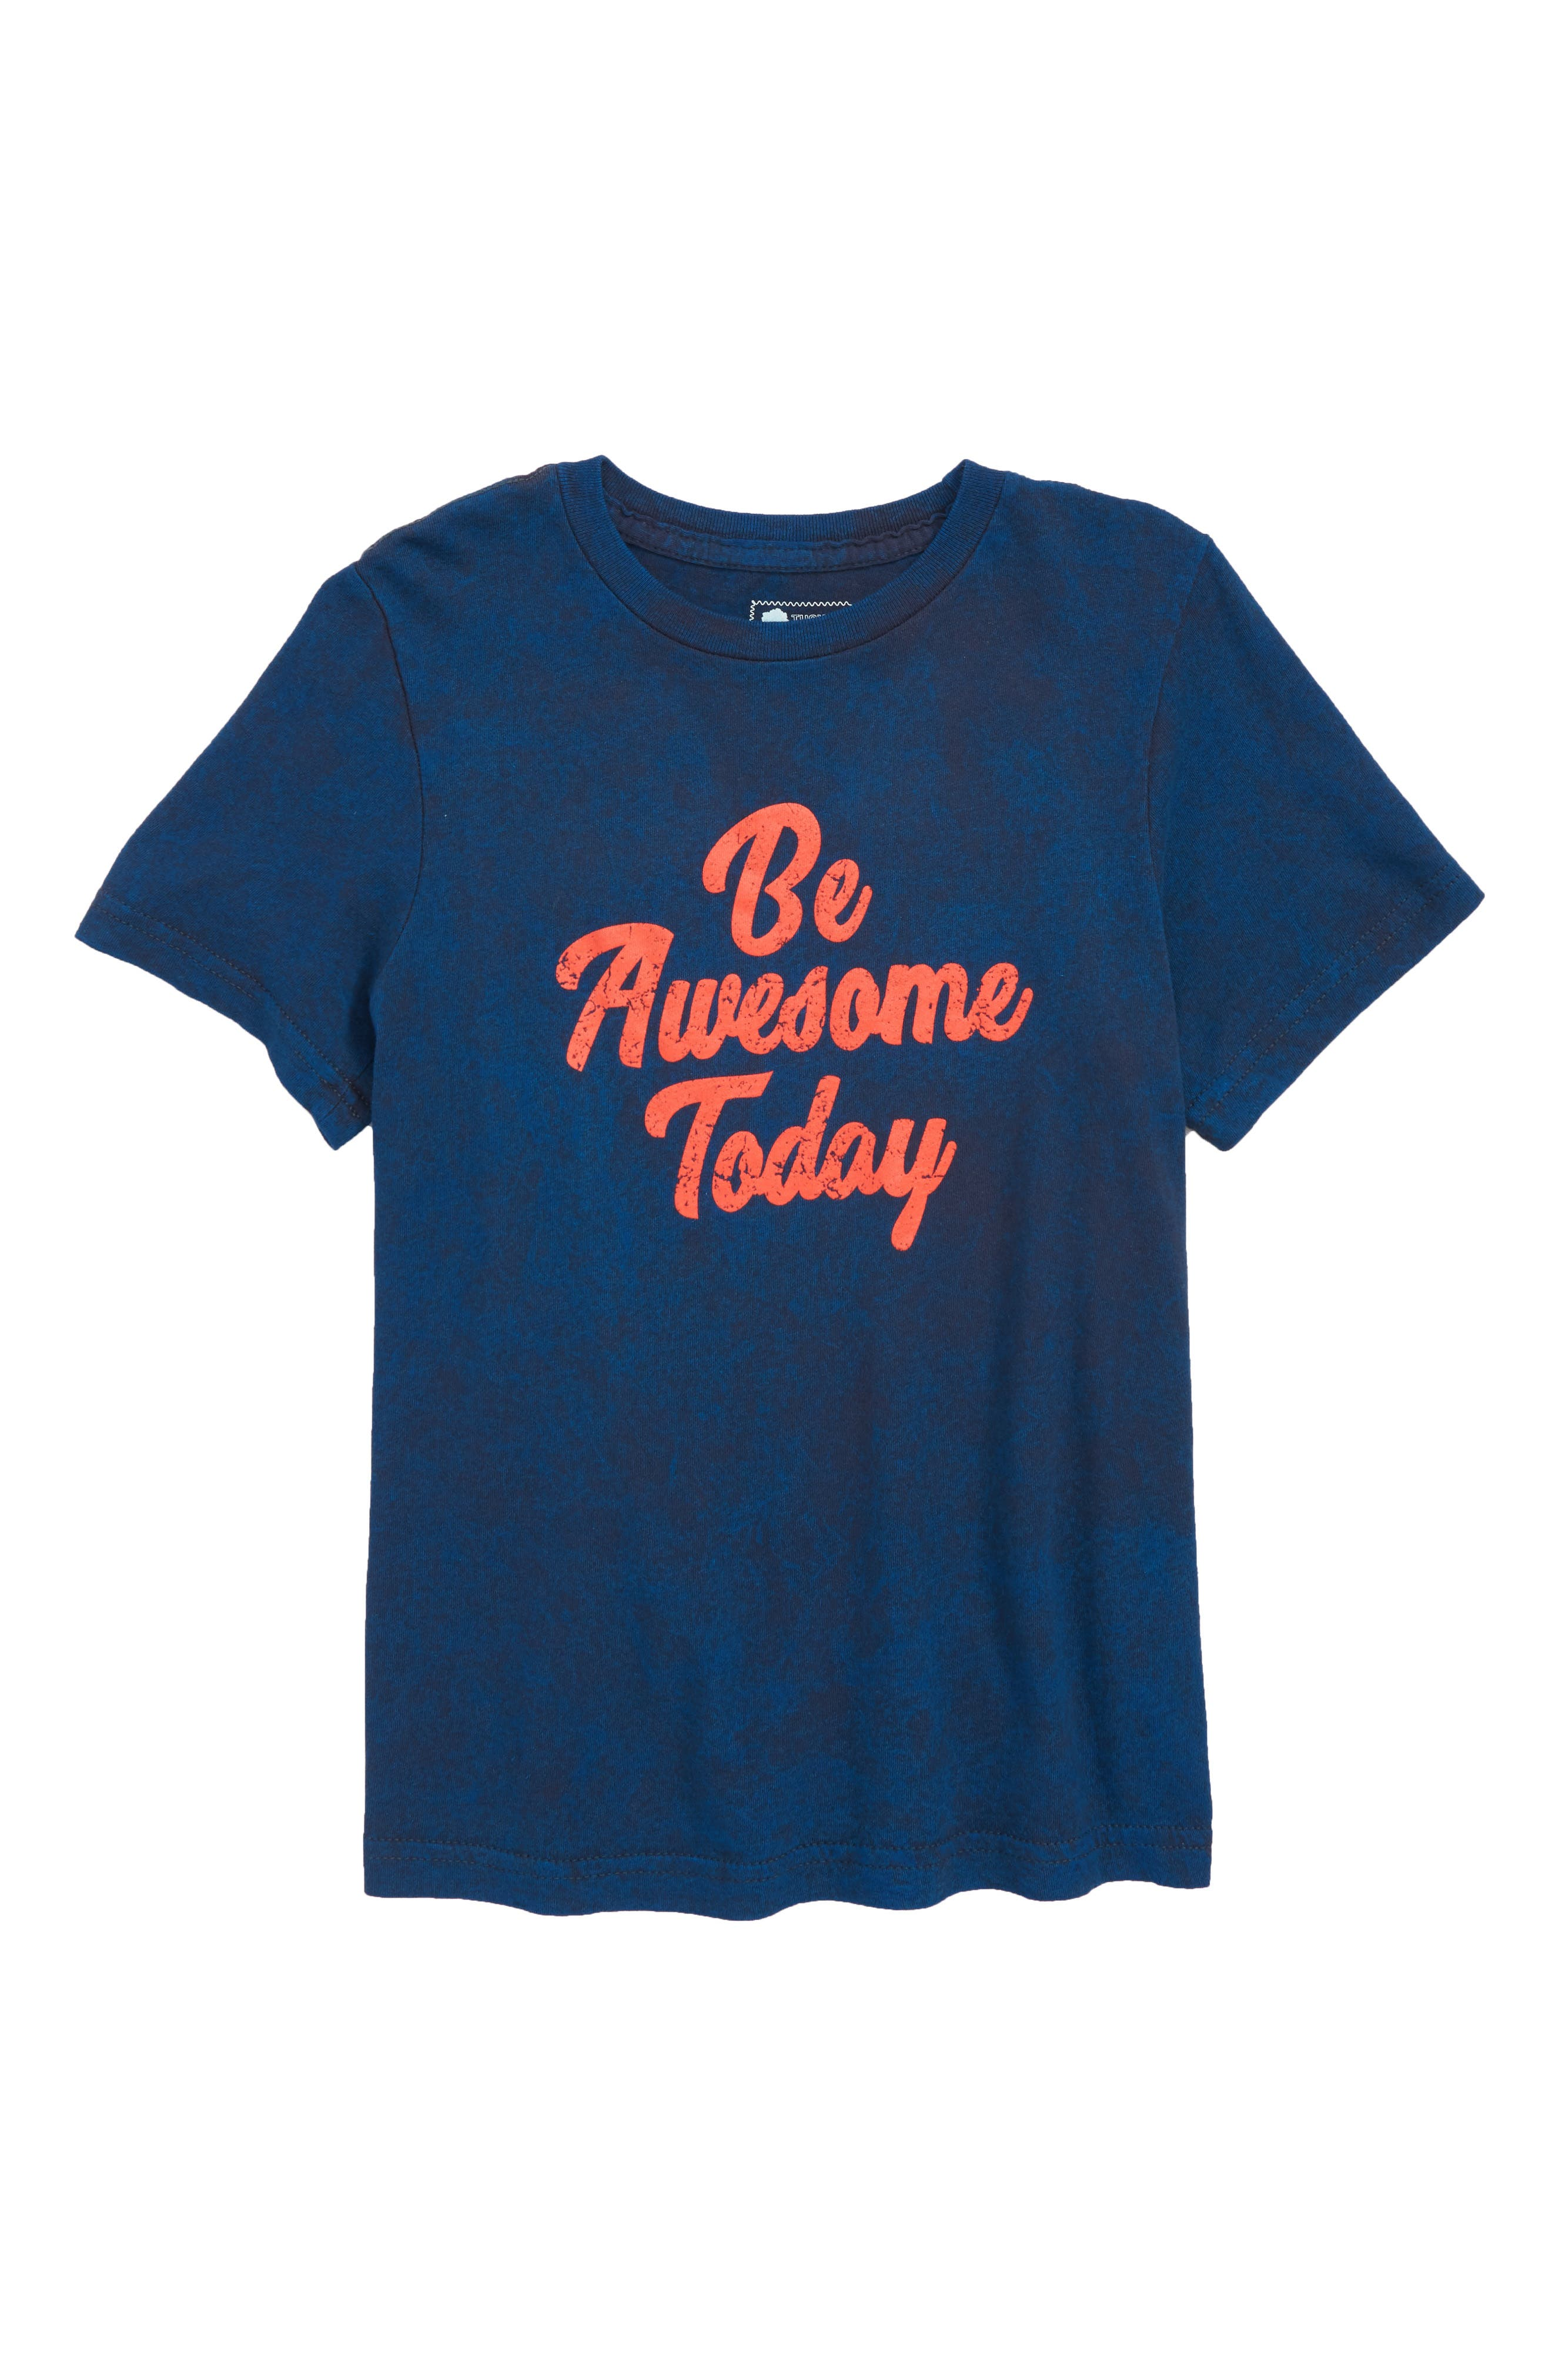 Graphic T-Shirt,                         Main,                         color, BLUE WING BE AWESOME